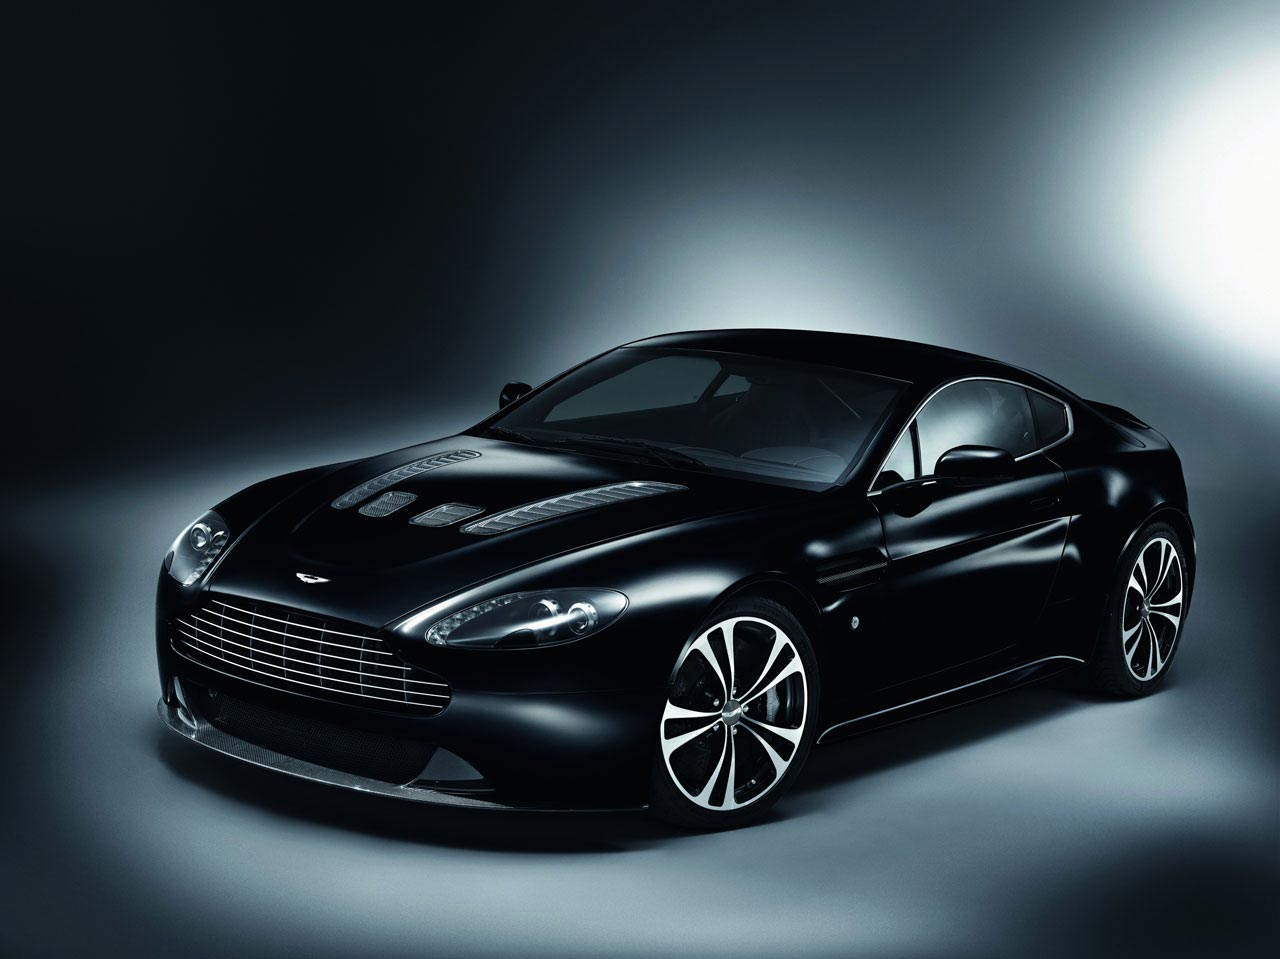 aston-martin-carbon-black-special-edition-3-lg